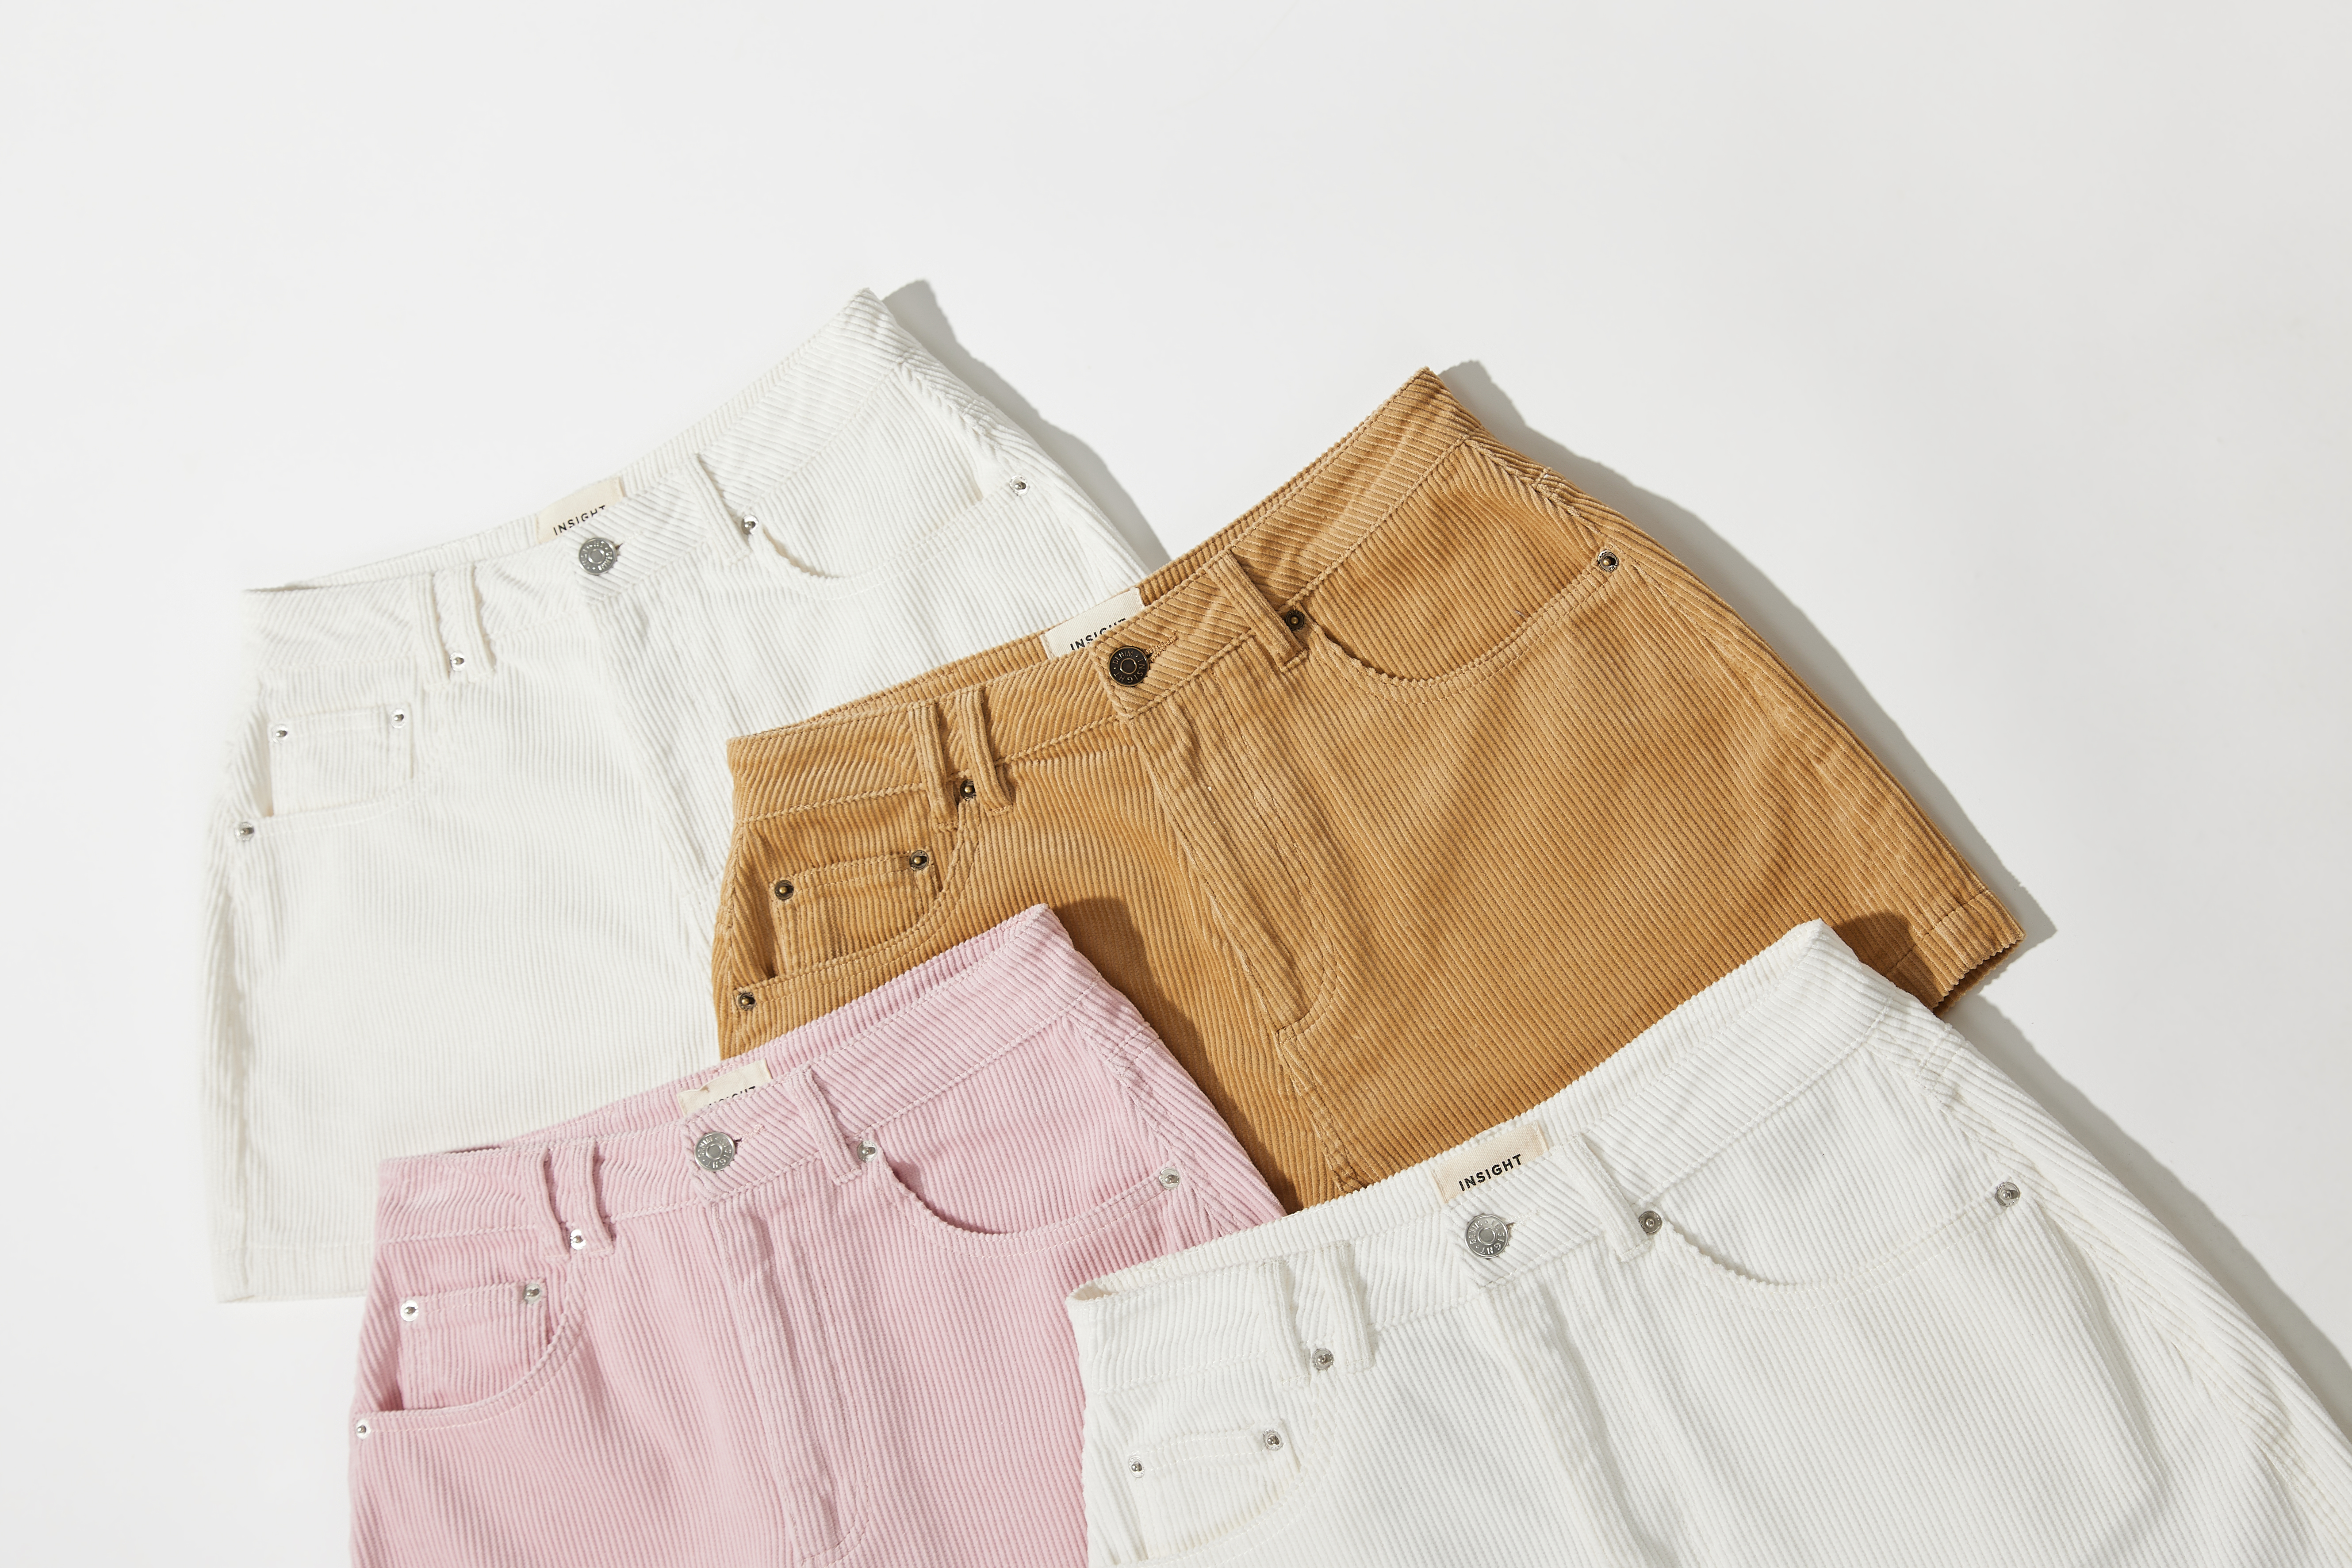 Four pairs of cord shorts flat laid on a white background